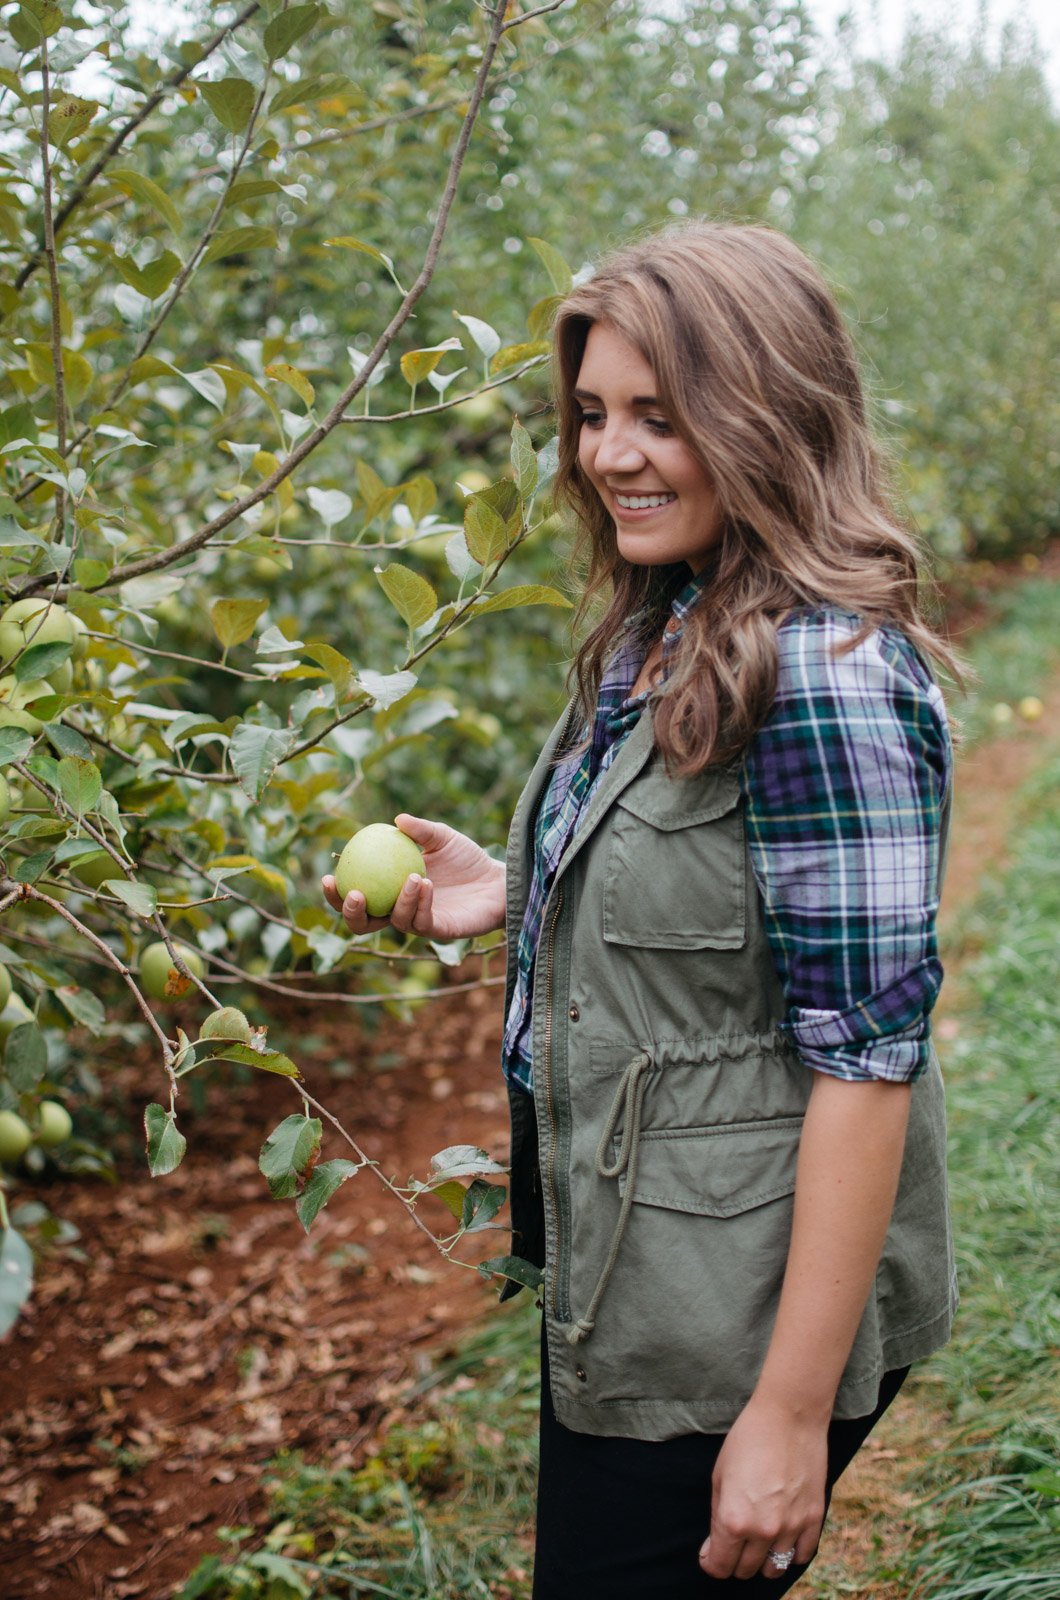 cute apple picking outfit - what to wear apple picking | For more Fall outfit ideas, head to bylaurenm.com!